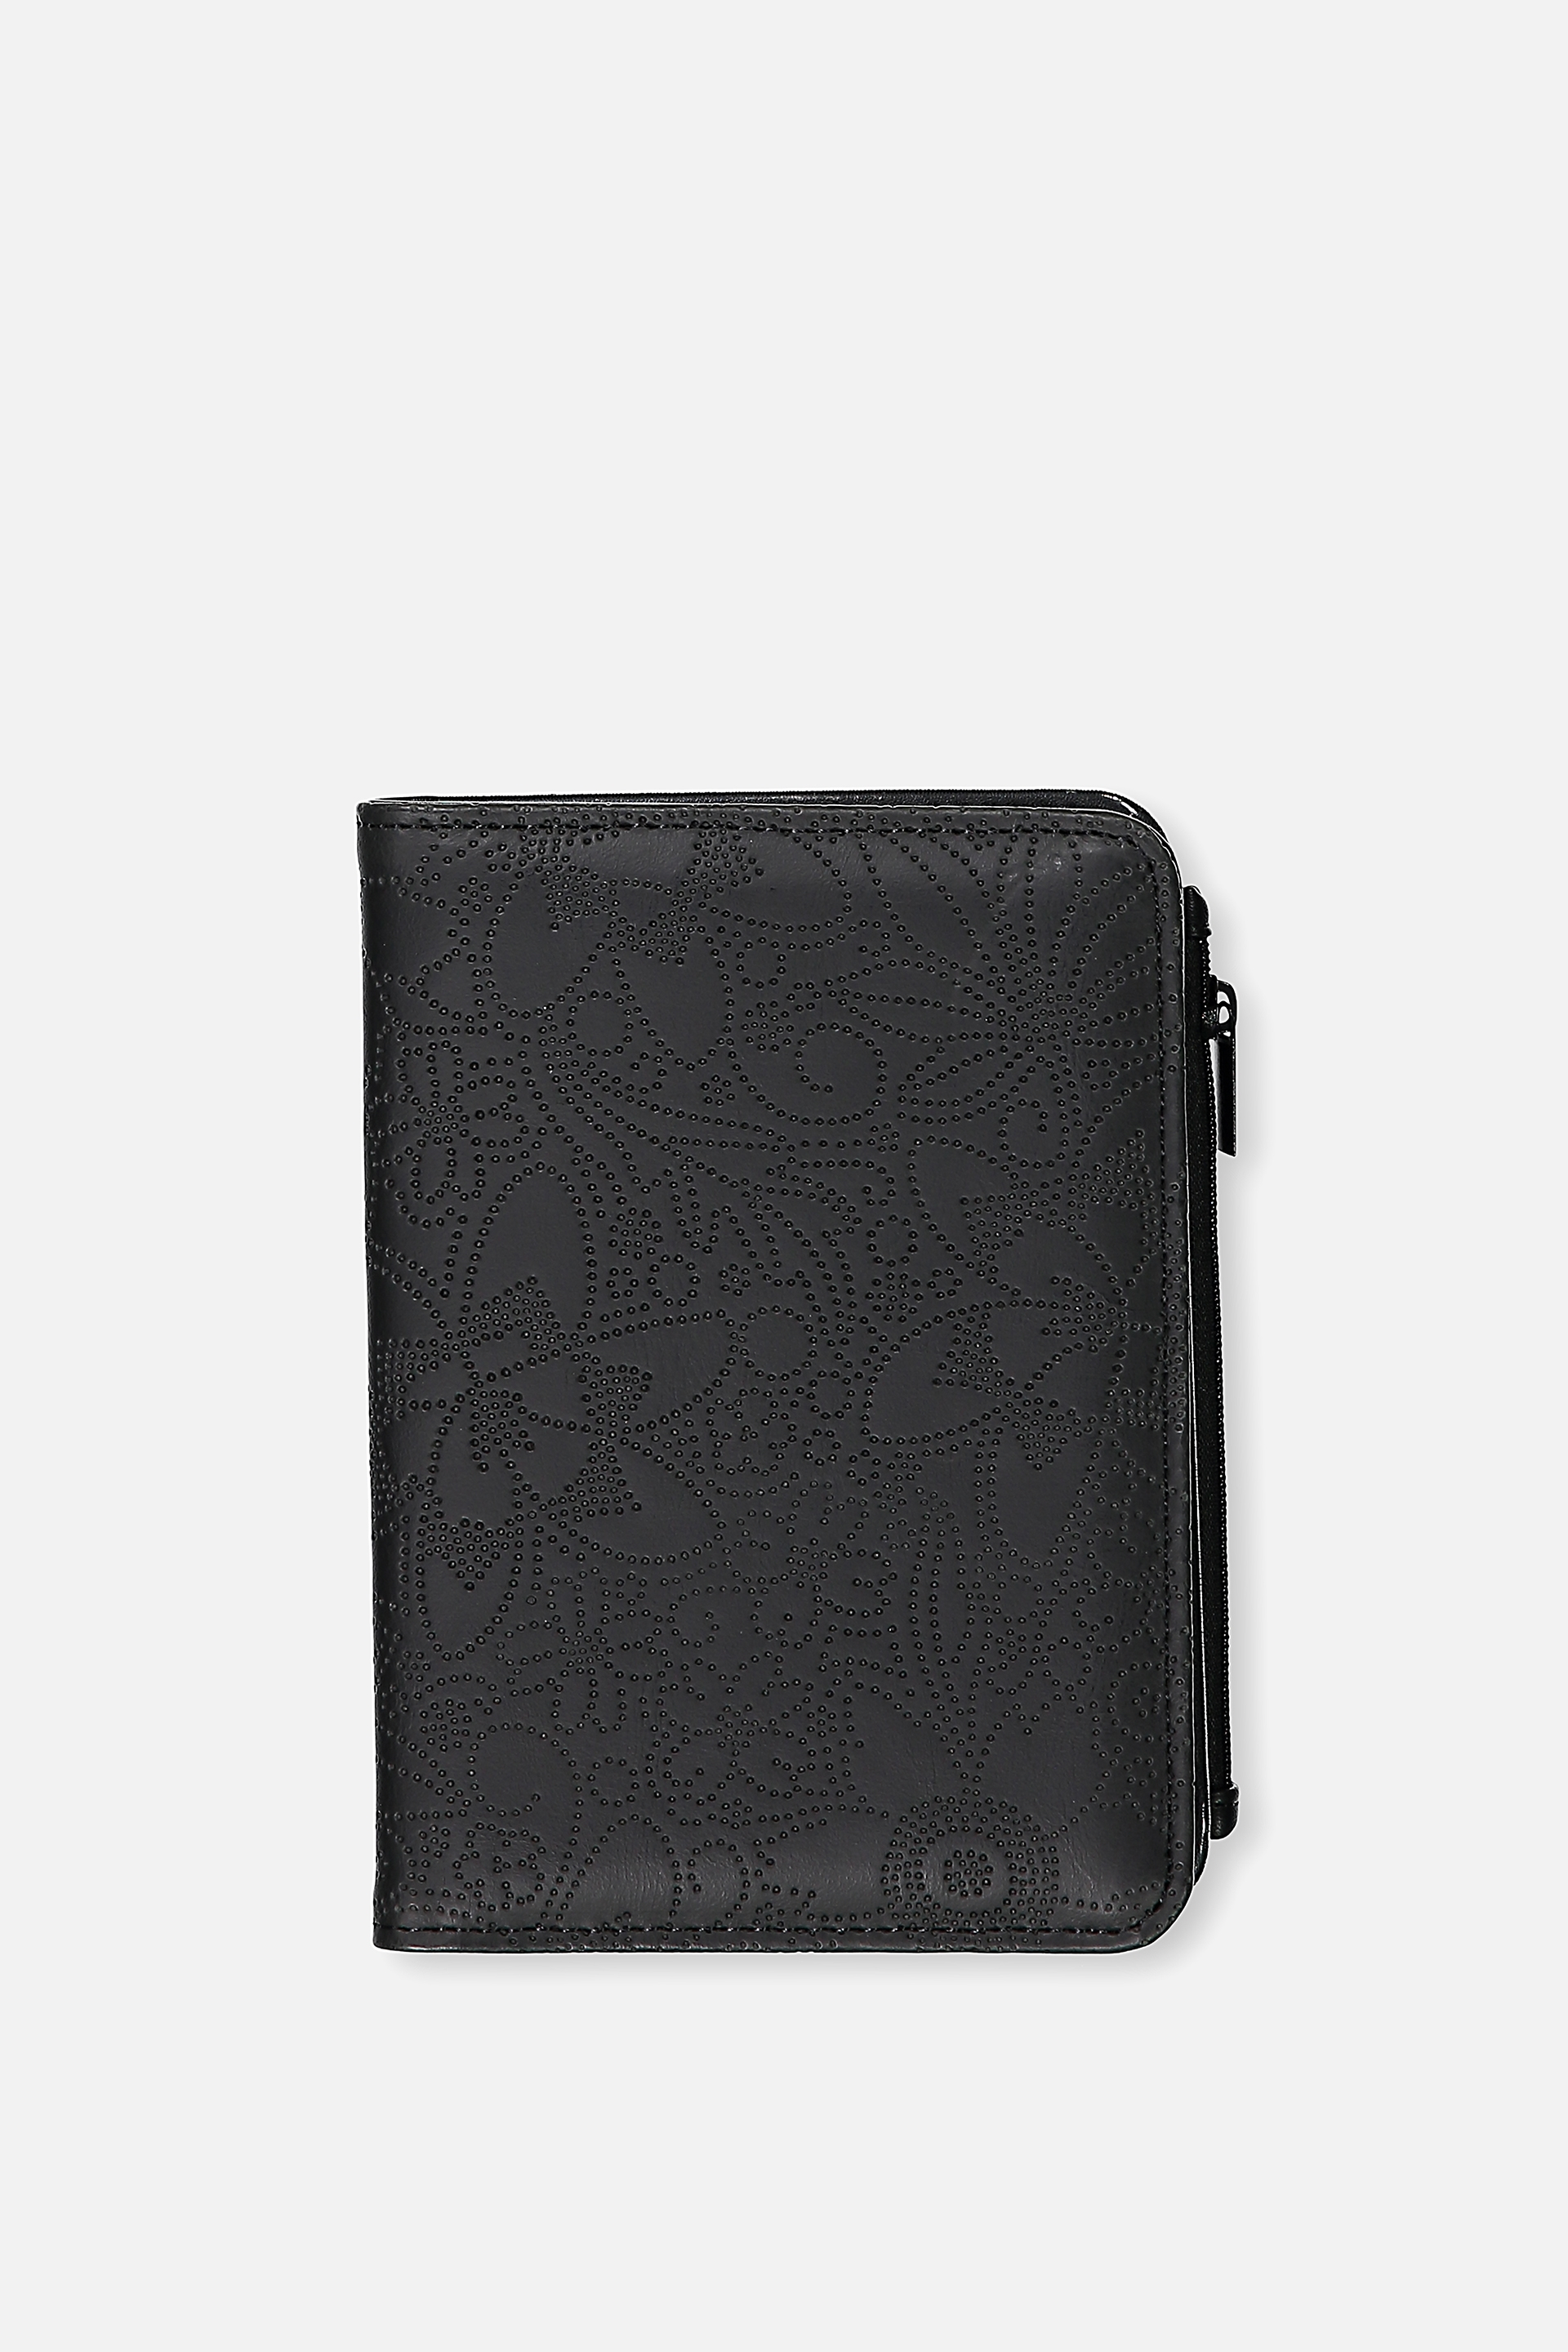 Typo - Classic Passport Holder - Black floral perf 9352403569938